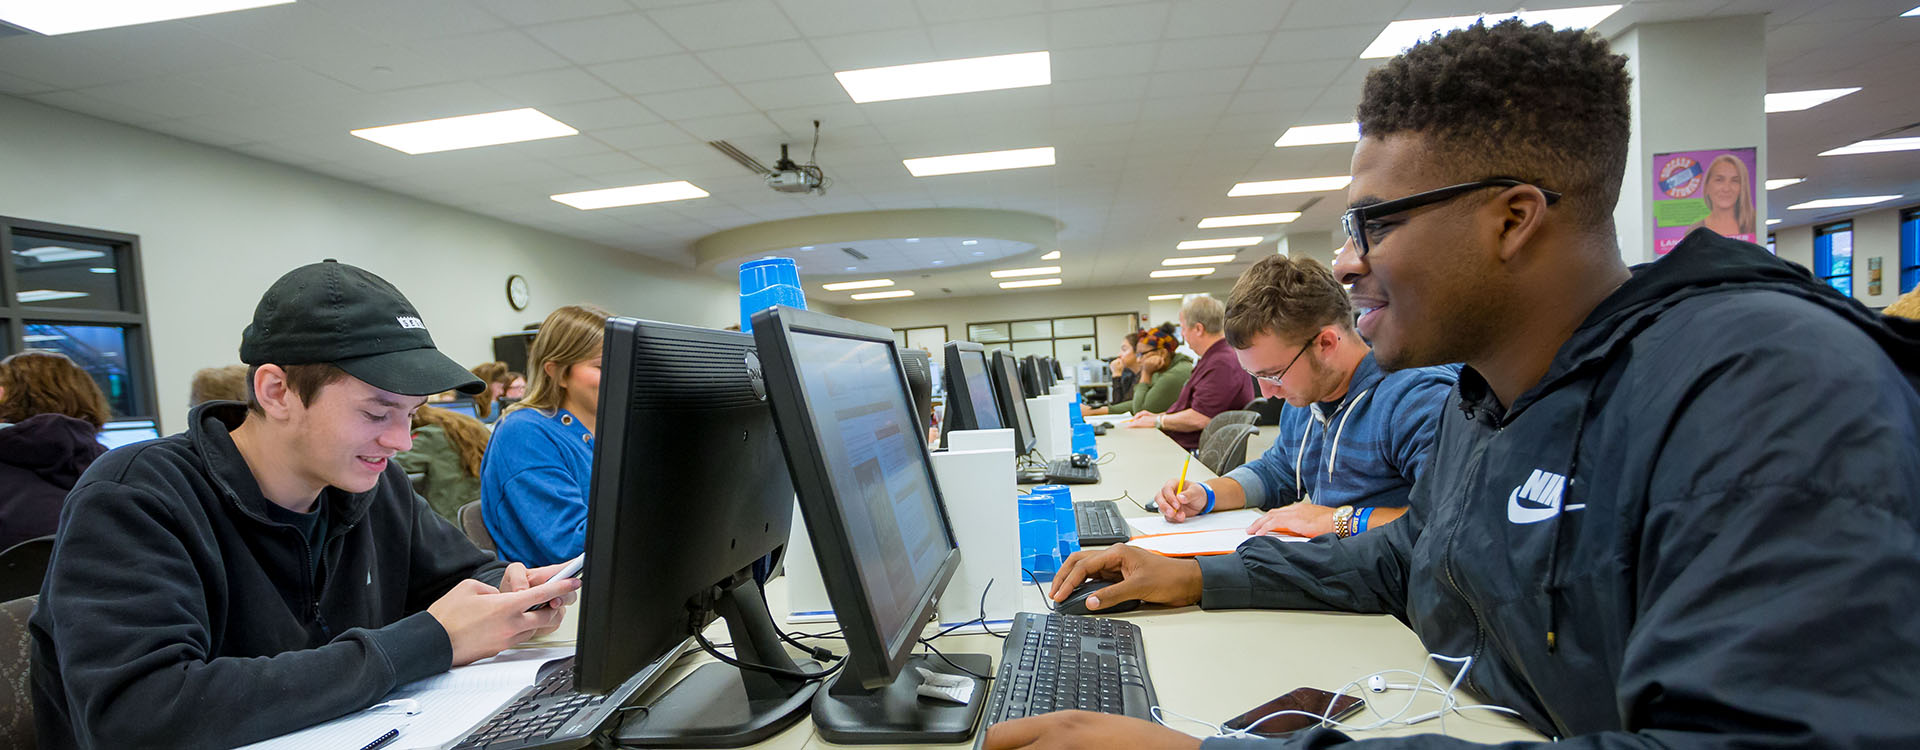 students using computers in the Learning Commons